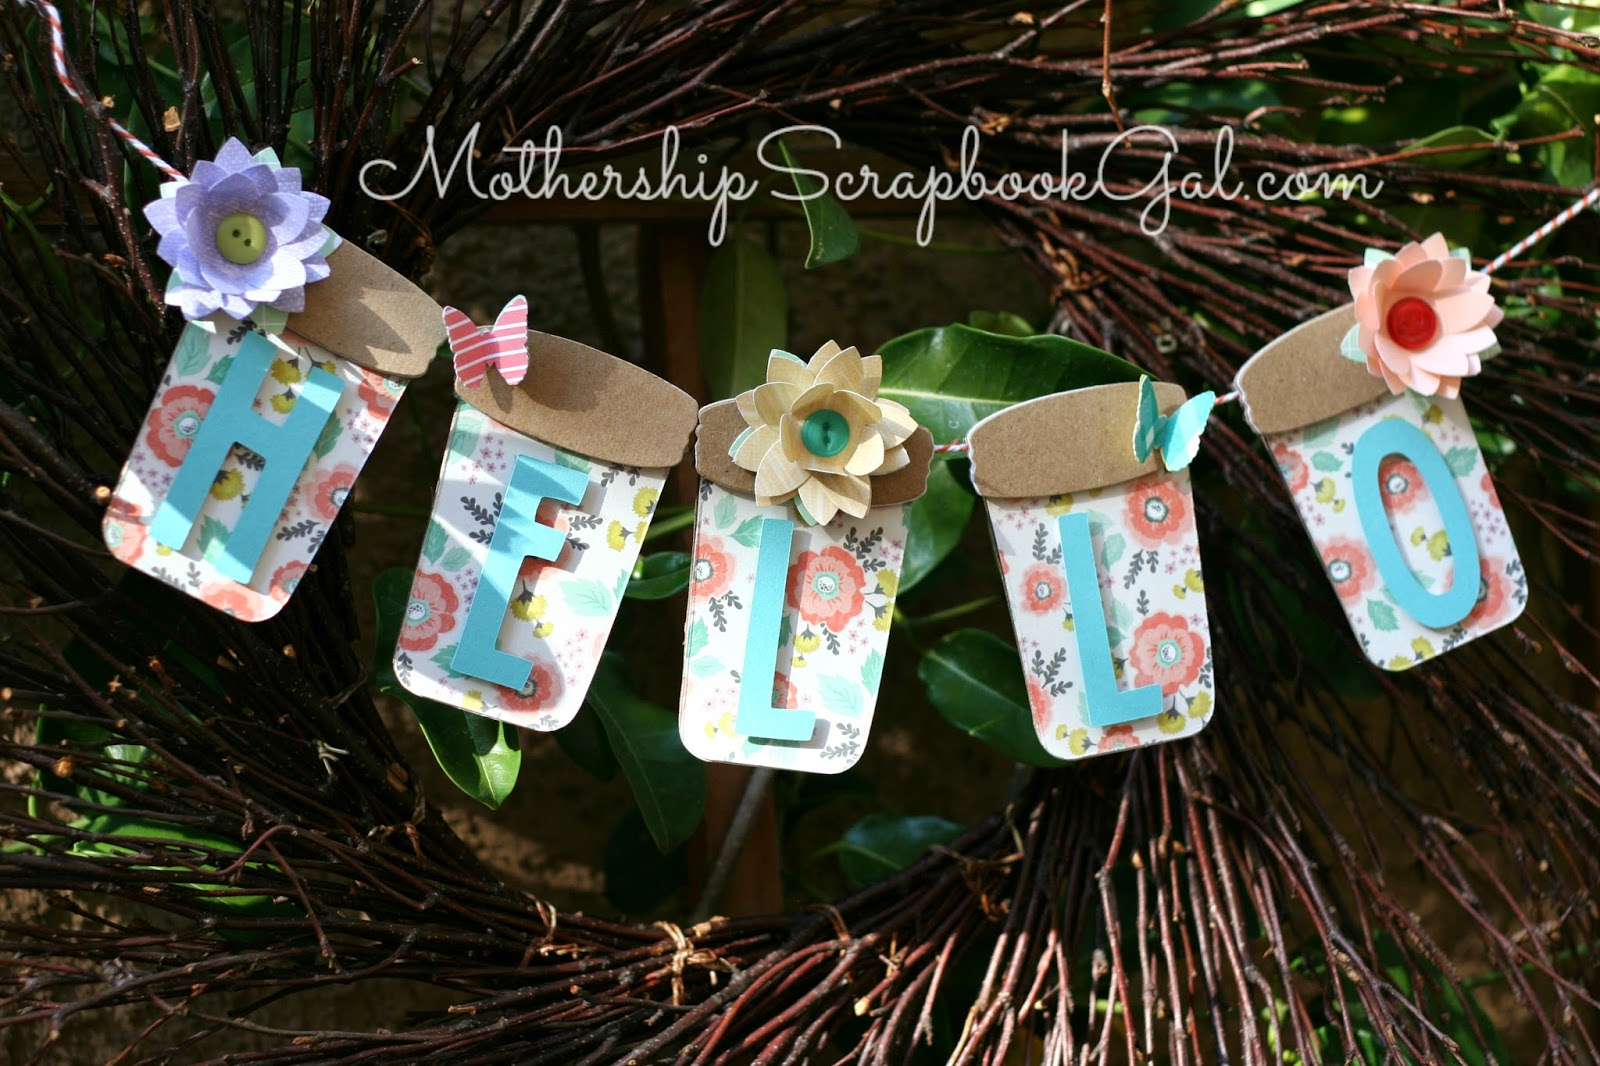 www.facebook.com/mothershipscrapbookgal